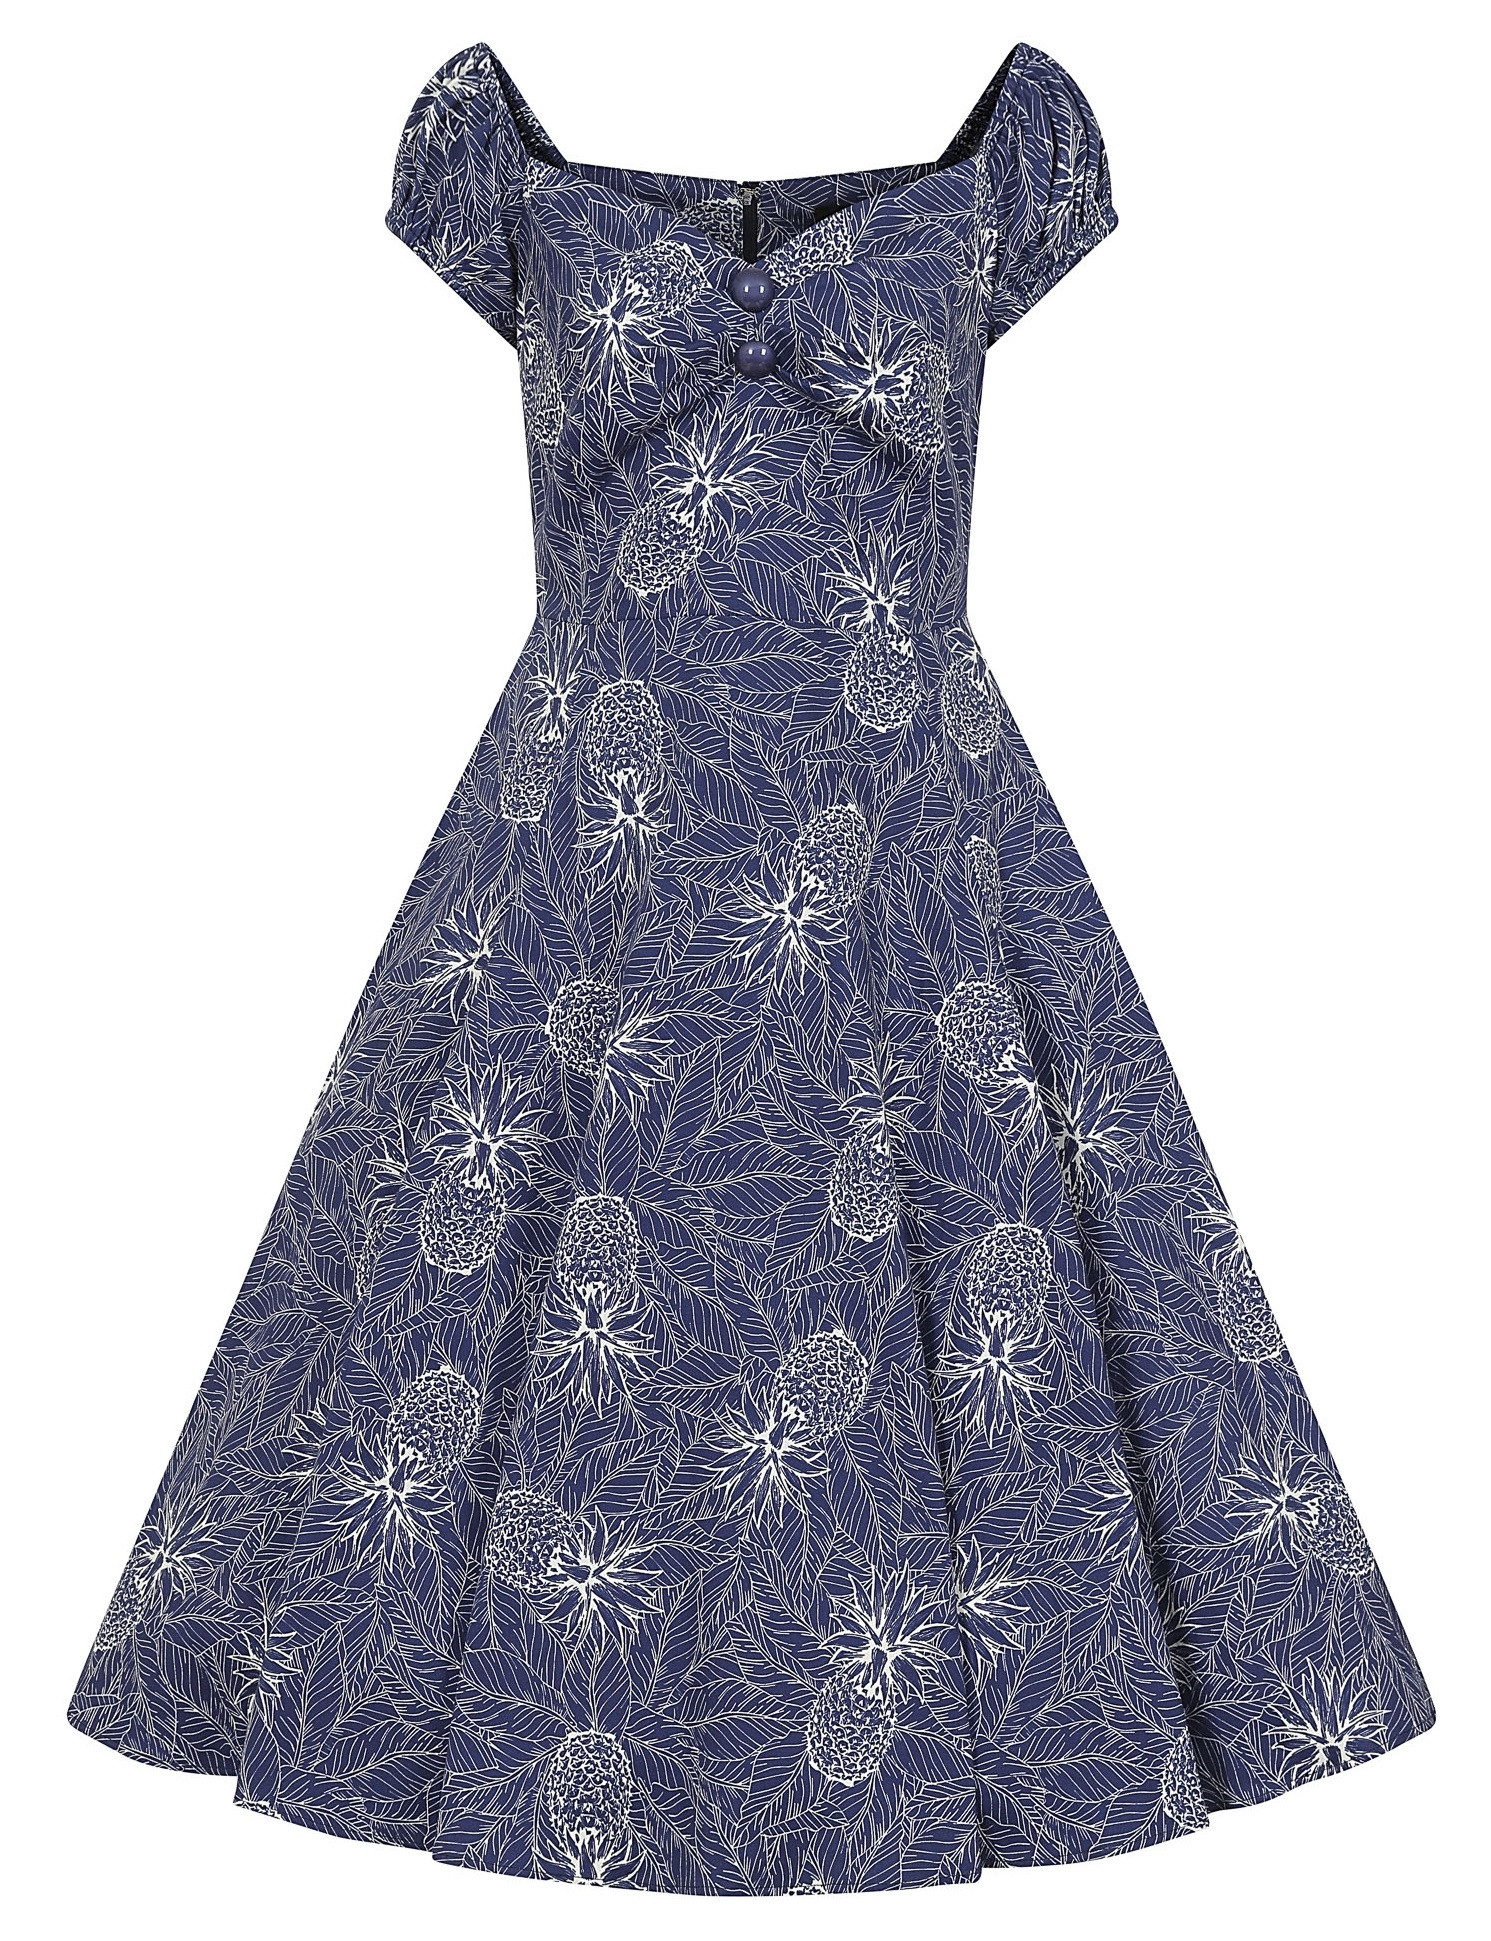 Collectif Pineapple Palm Dolores Doll Dress